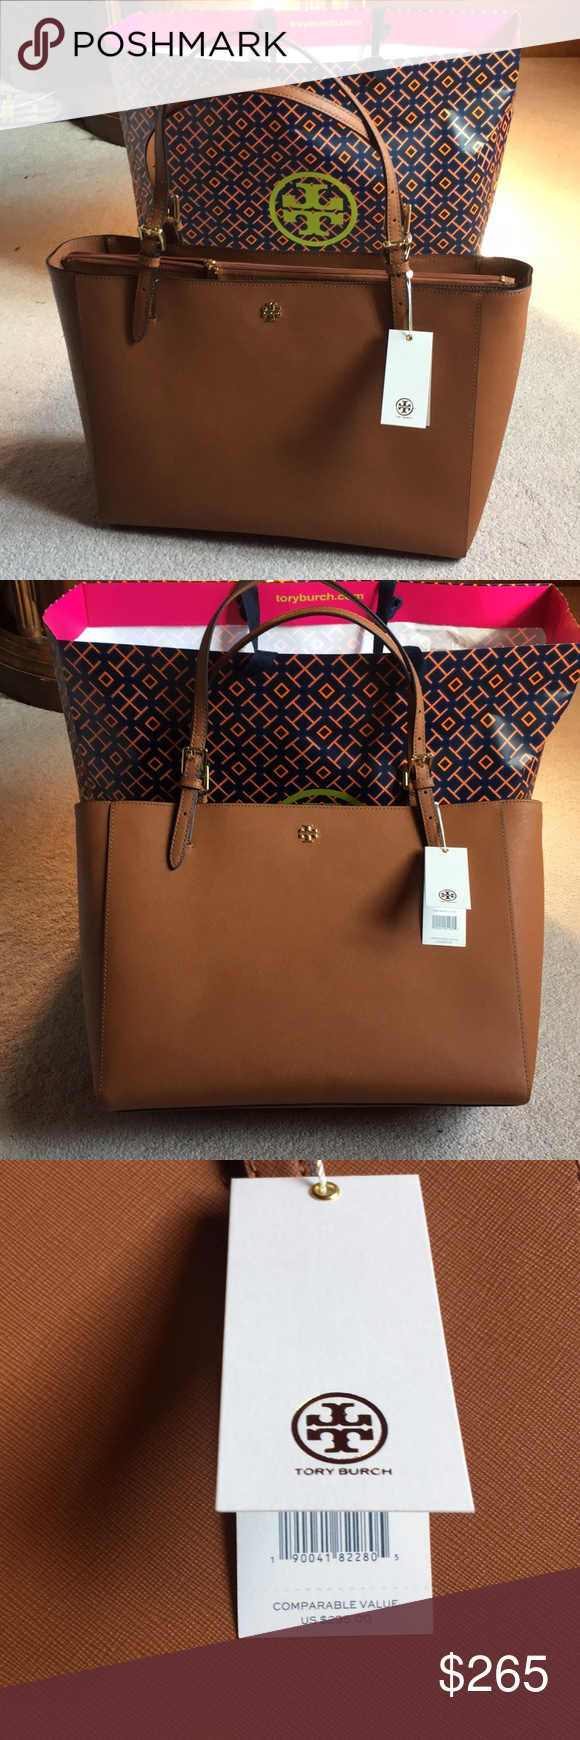 9c674499f320 Tory Burch Emerson buckle tote 👜 NWT luggage tan Tory Burch Emerson buckle  tote 👜 NWT luggage tan Tory Burch Bags Totes